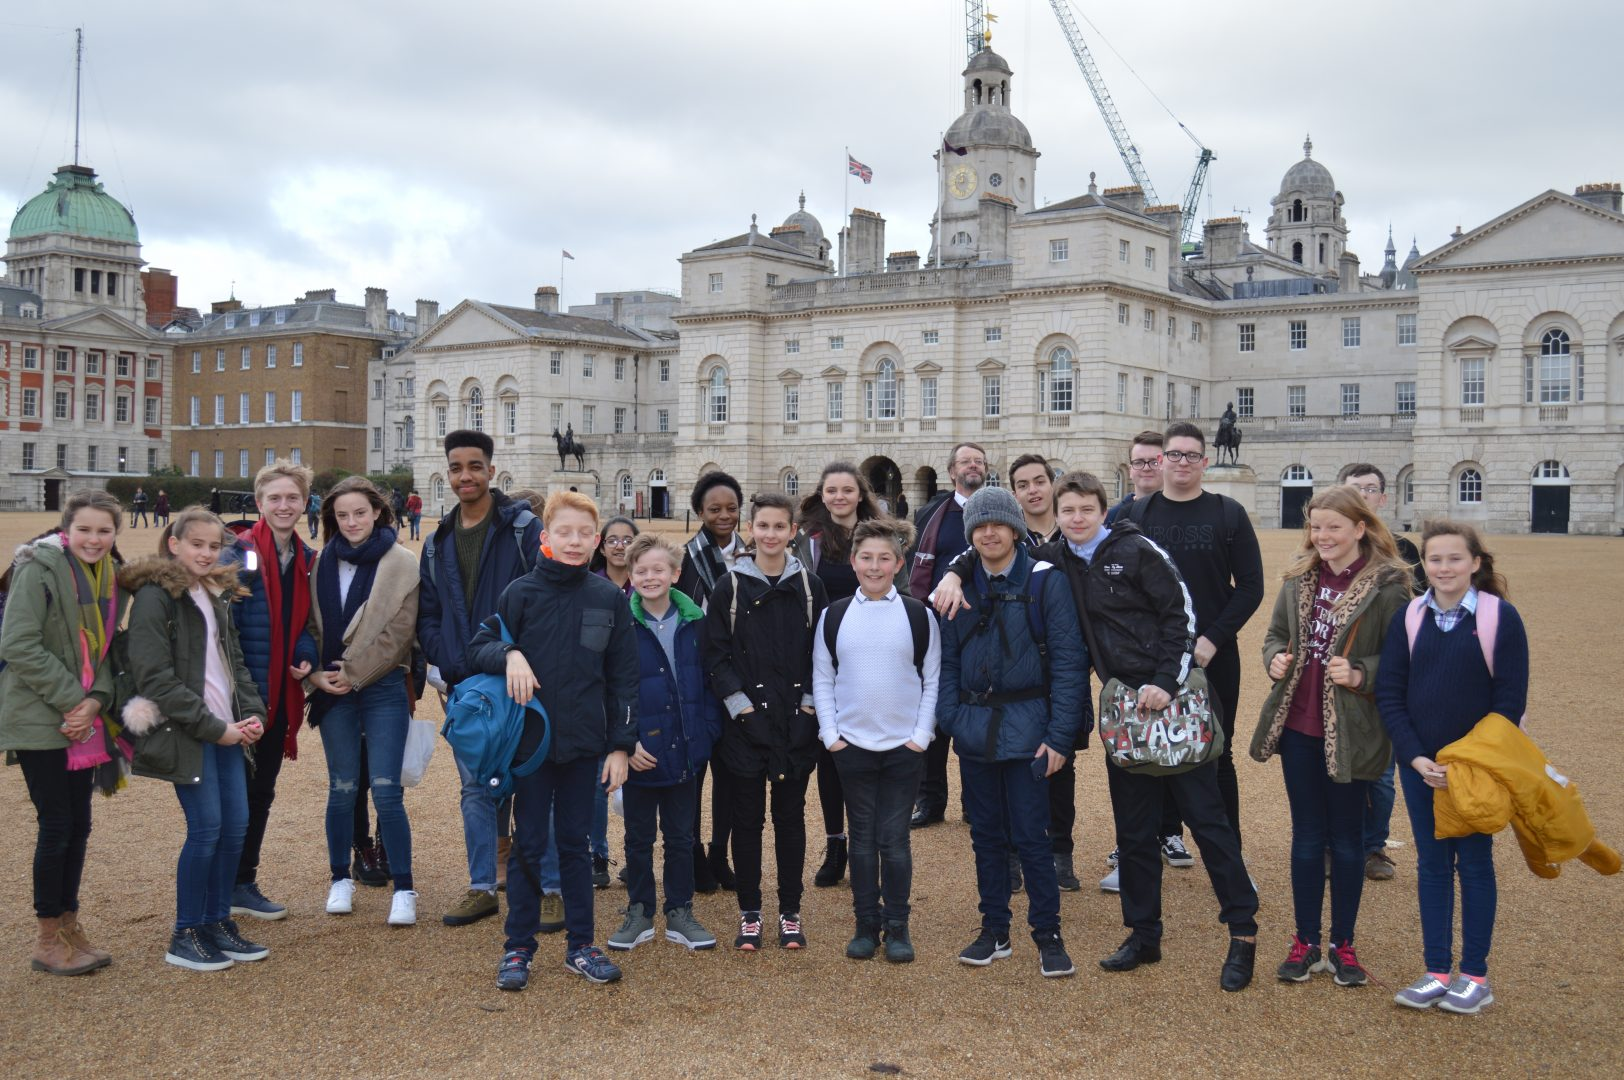 QHS students visit Buckingham Palace